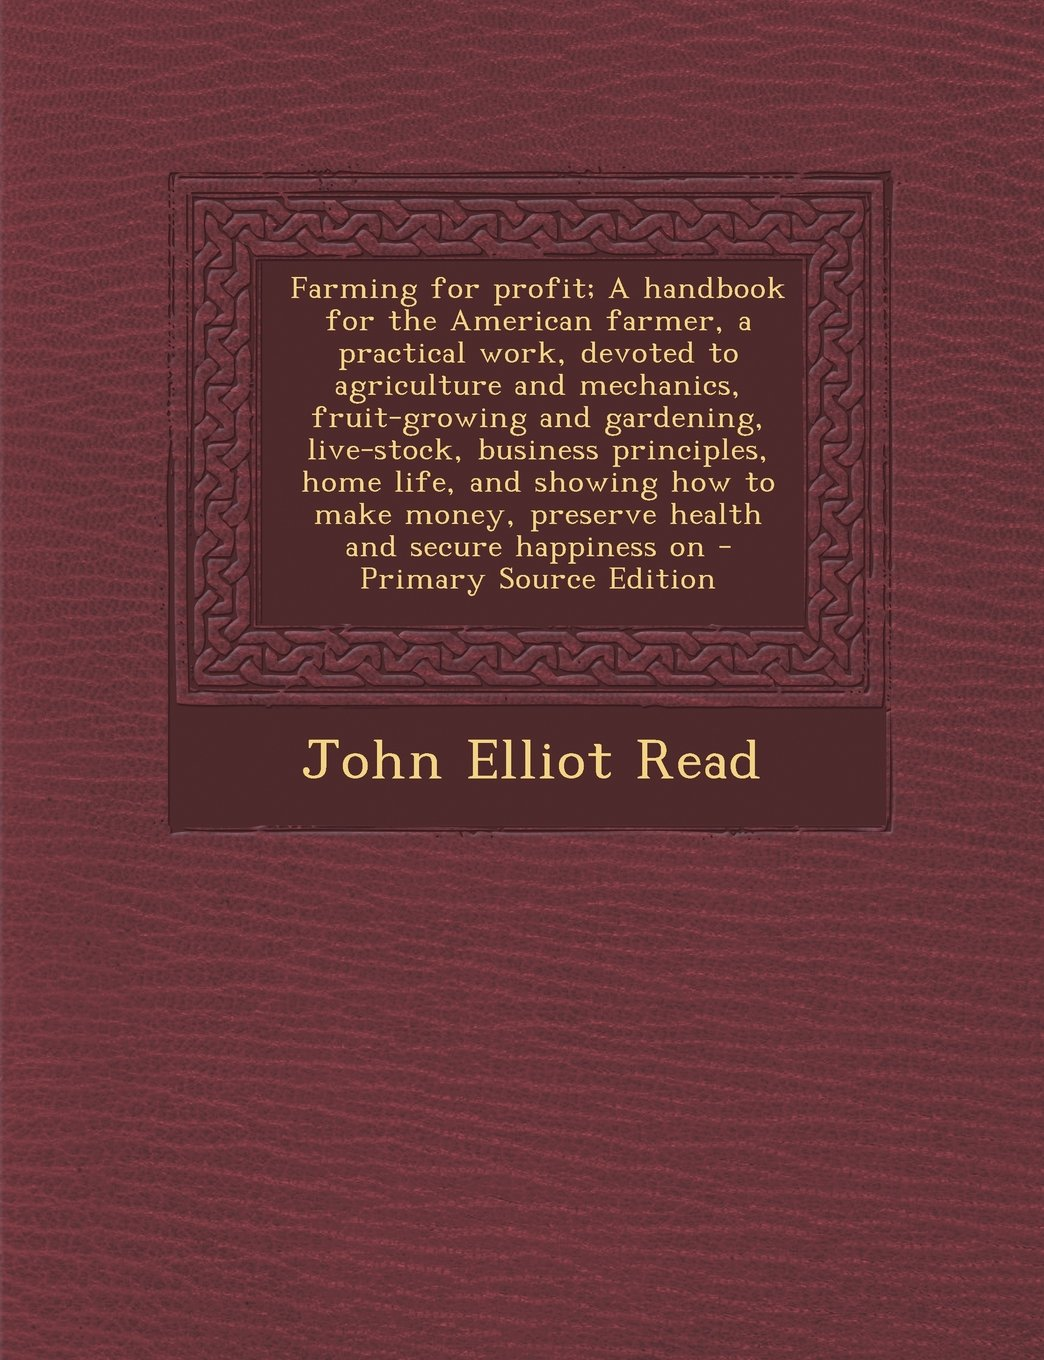 Farming for Profit; A Handbook for the American Farmer, a Practical Work, Devoted to Agriculture and Mechanics, Fruit-Growing and Gardening, Live-Stoc PDF